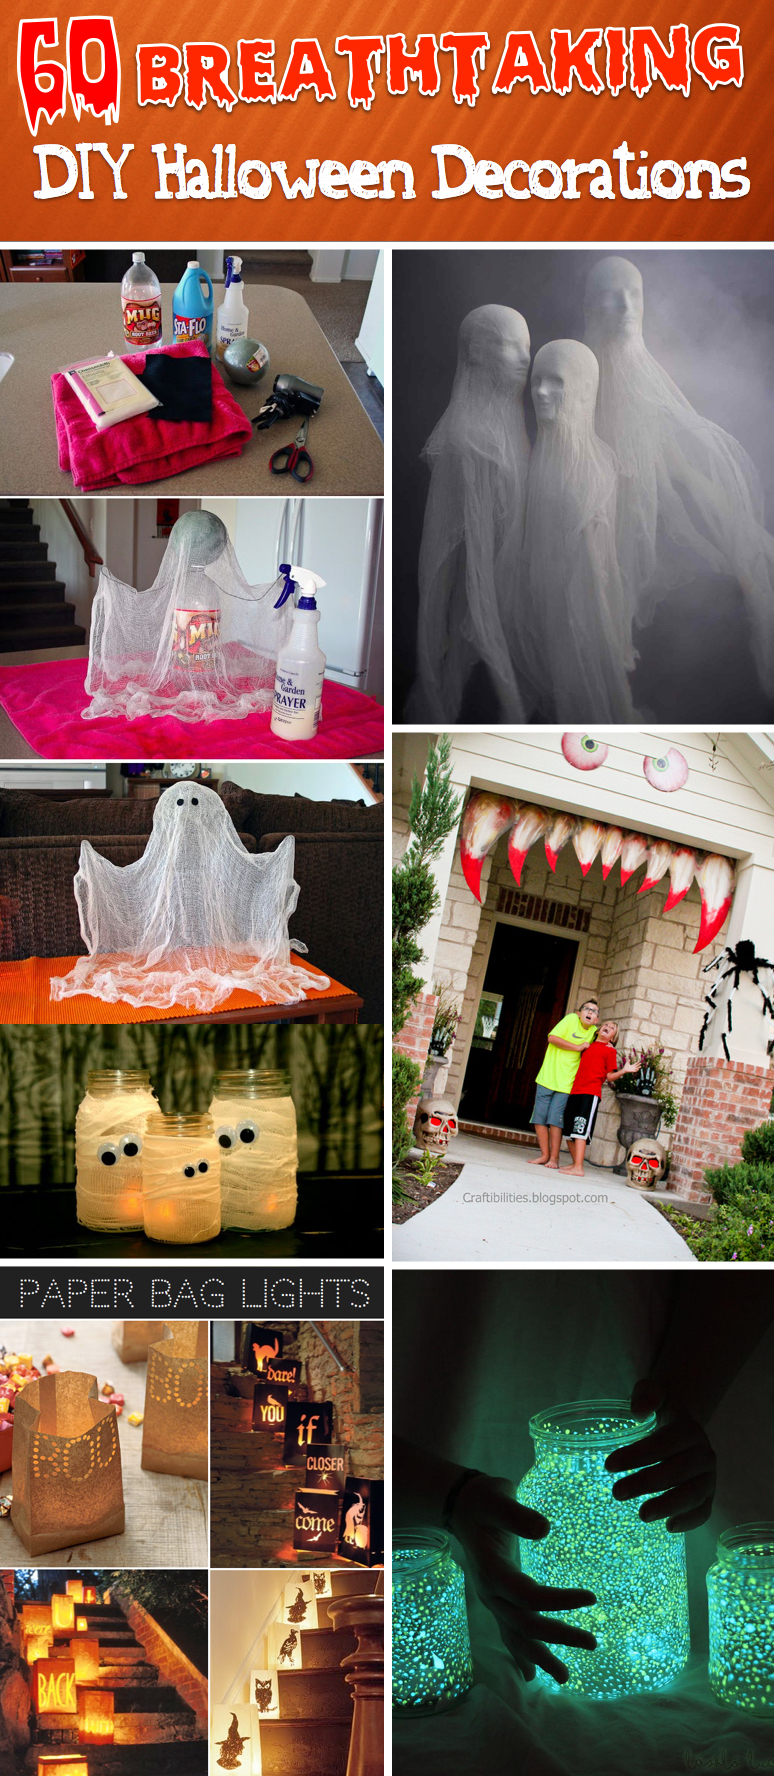 Cute halloween decorations to make - 60 Breathtaking And Effortless Diy Halloween Decorations